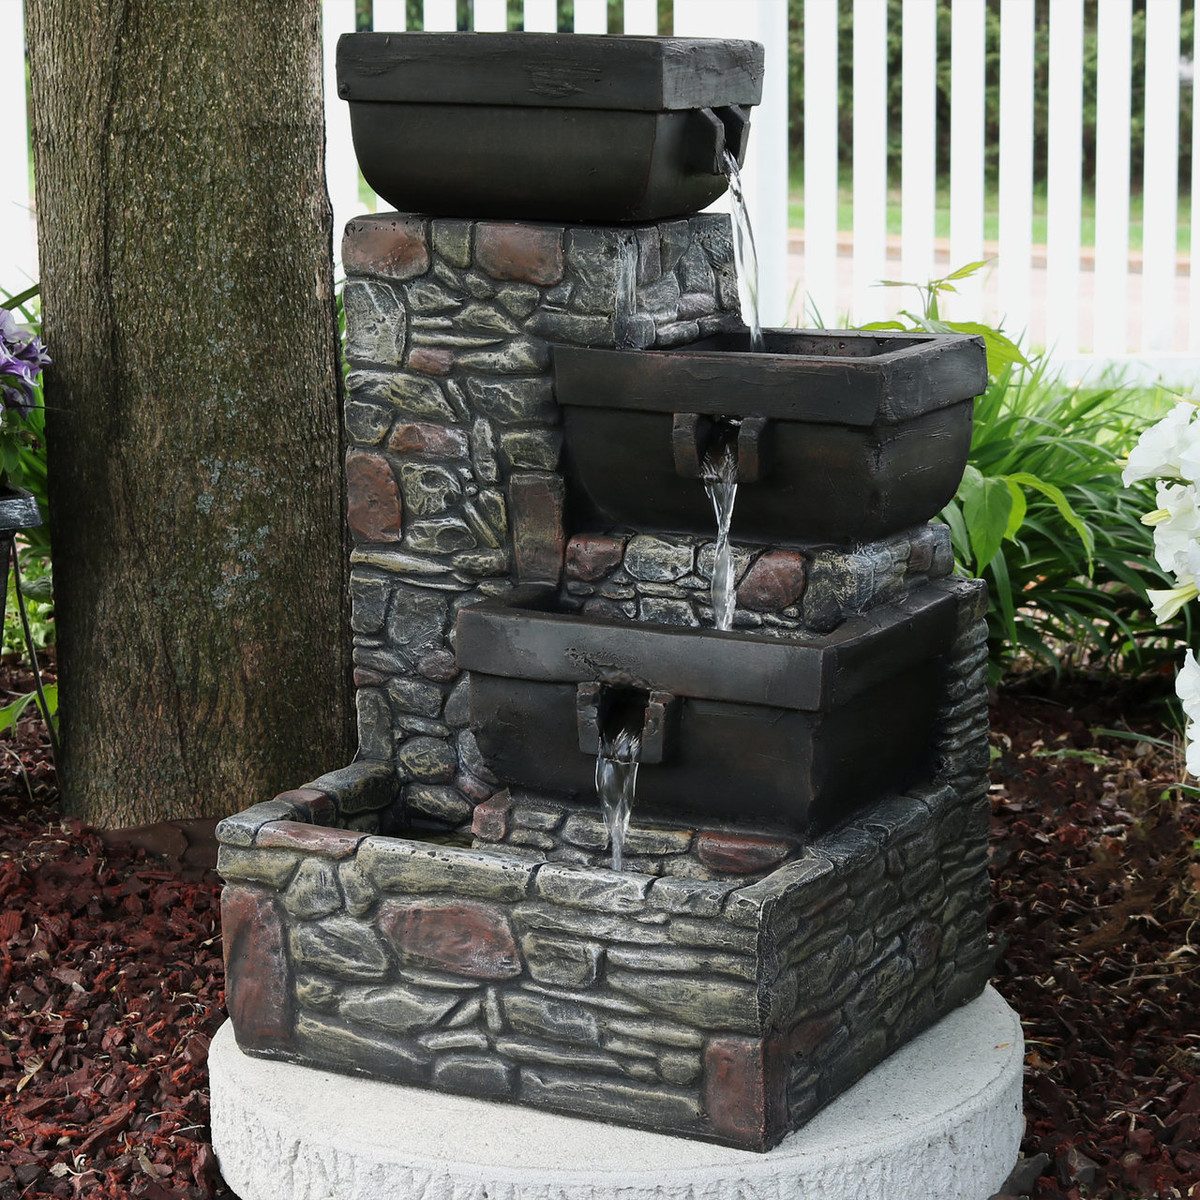 Sunnydaze 4 Tier Stacked Stone Square Bowls Outdoor Water